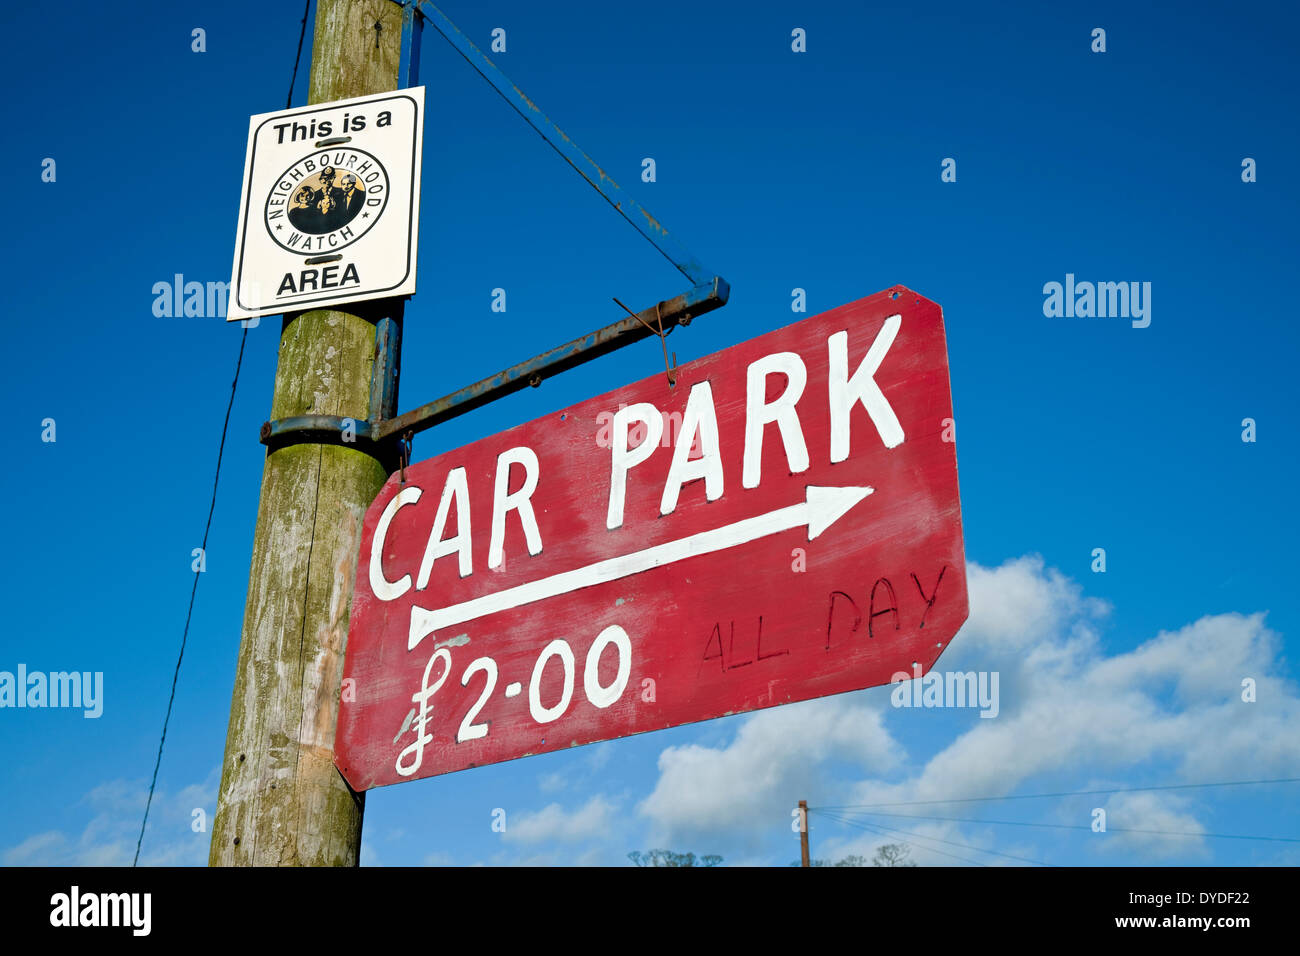 Neighbourhood watch area sign and hand painted all day car parking sign. - Stock Image